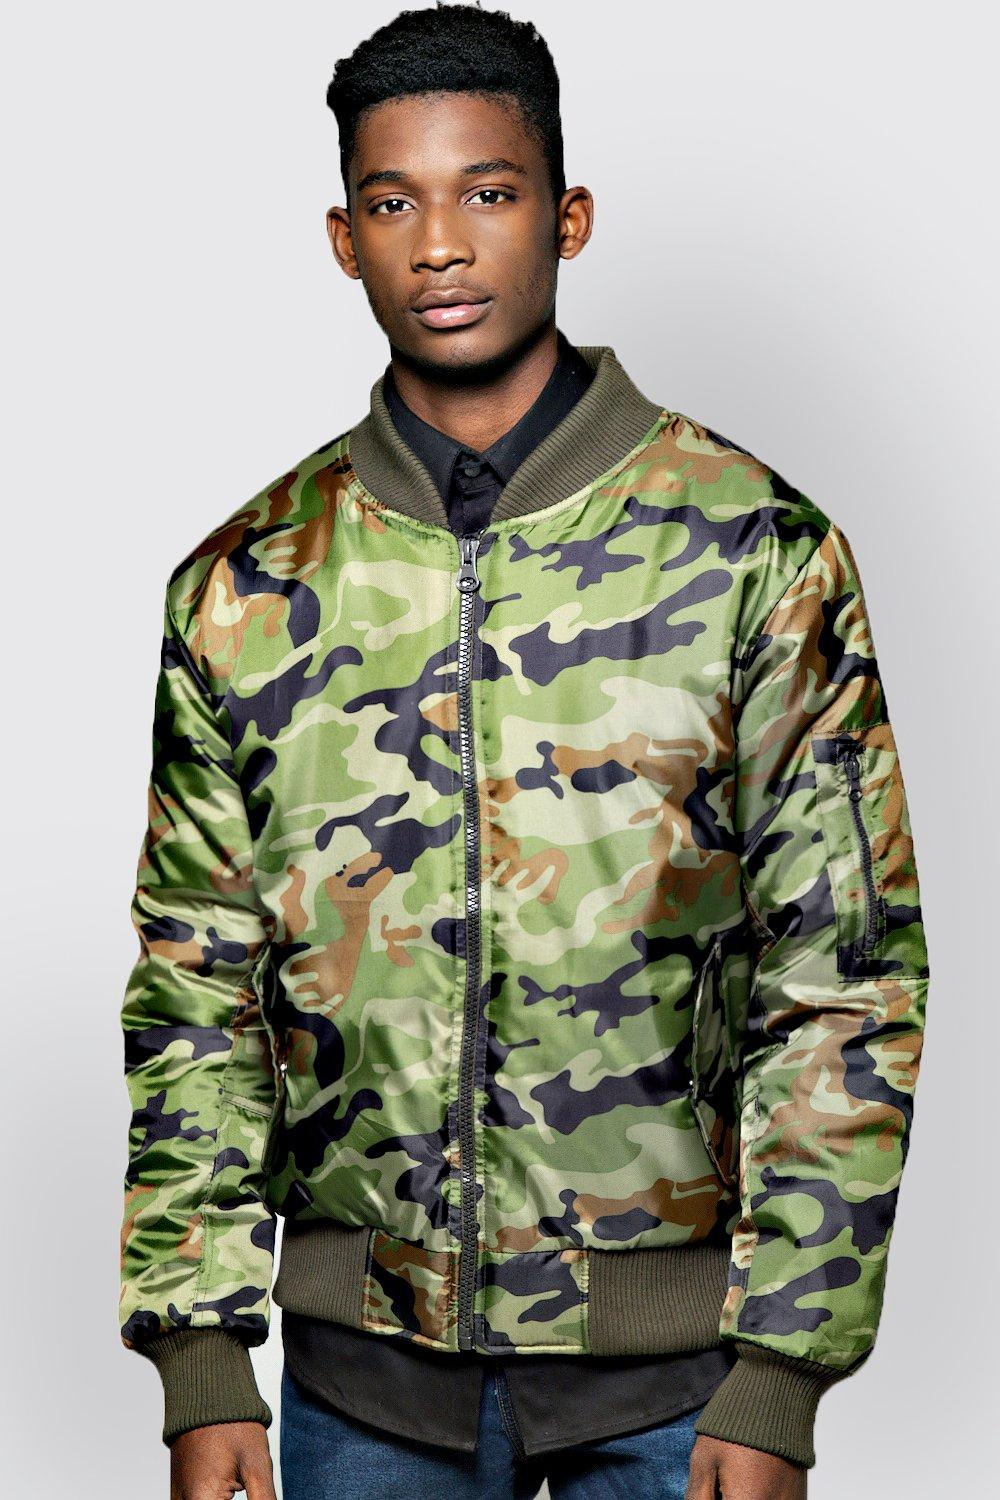 Men love the fit and good looks of these XL men's camo jackets. Browse for the correct clothing size and material from the many listed items to get exactly what you want. From the varying colors and patterns, you'll be sure to find ones that look suitable to you.